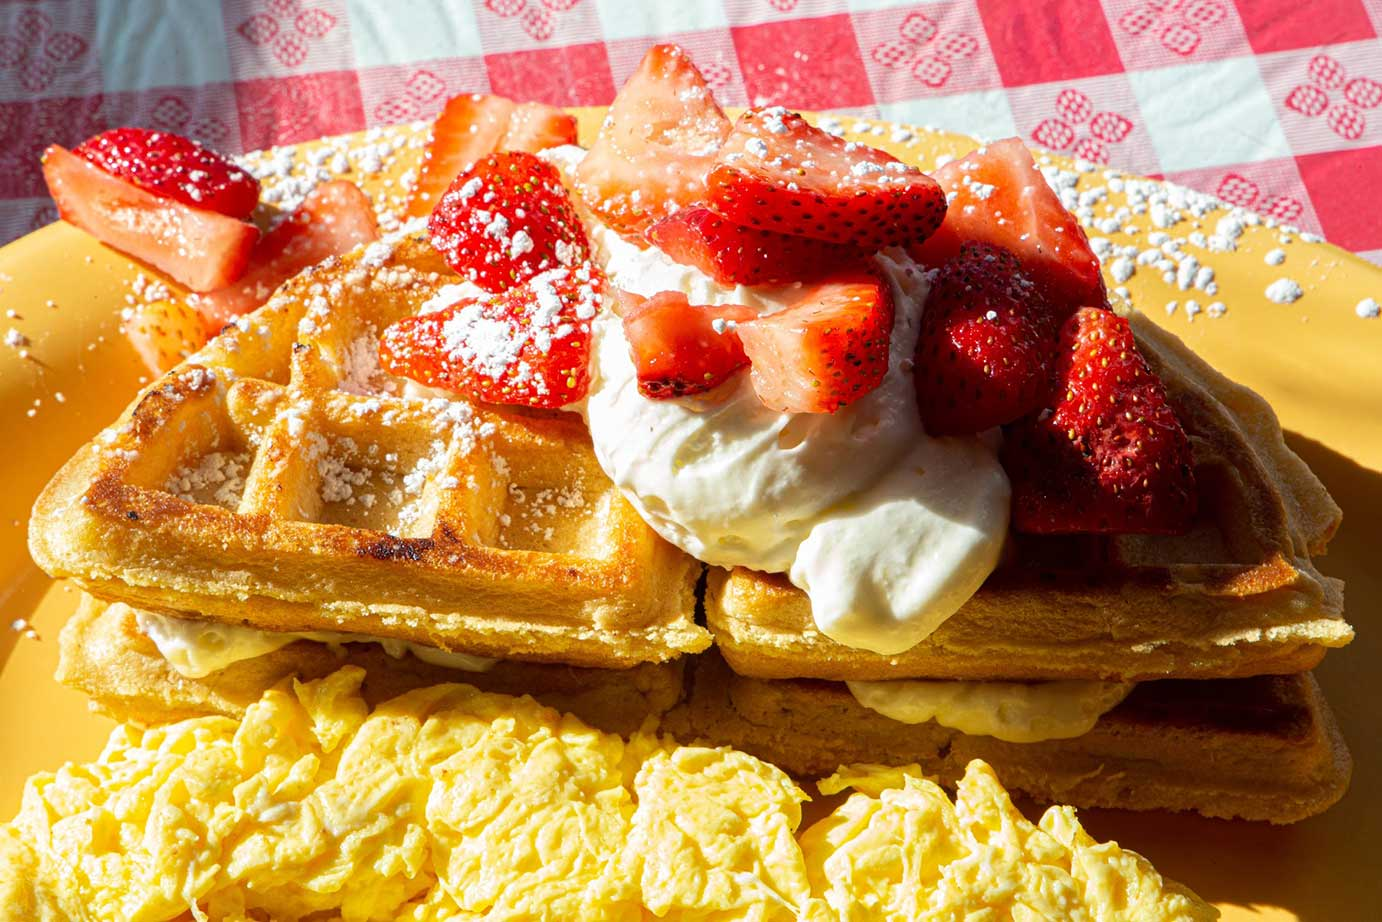 Waffle with cream and strawberries